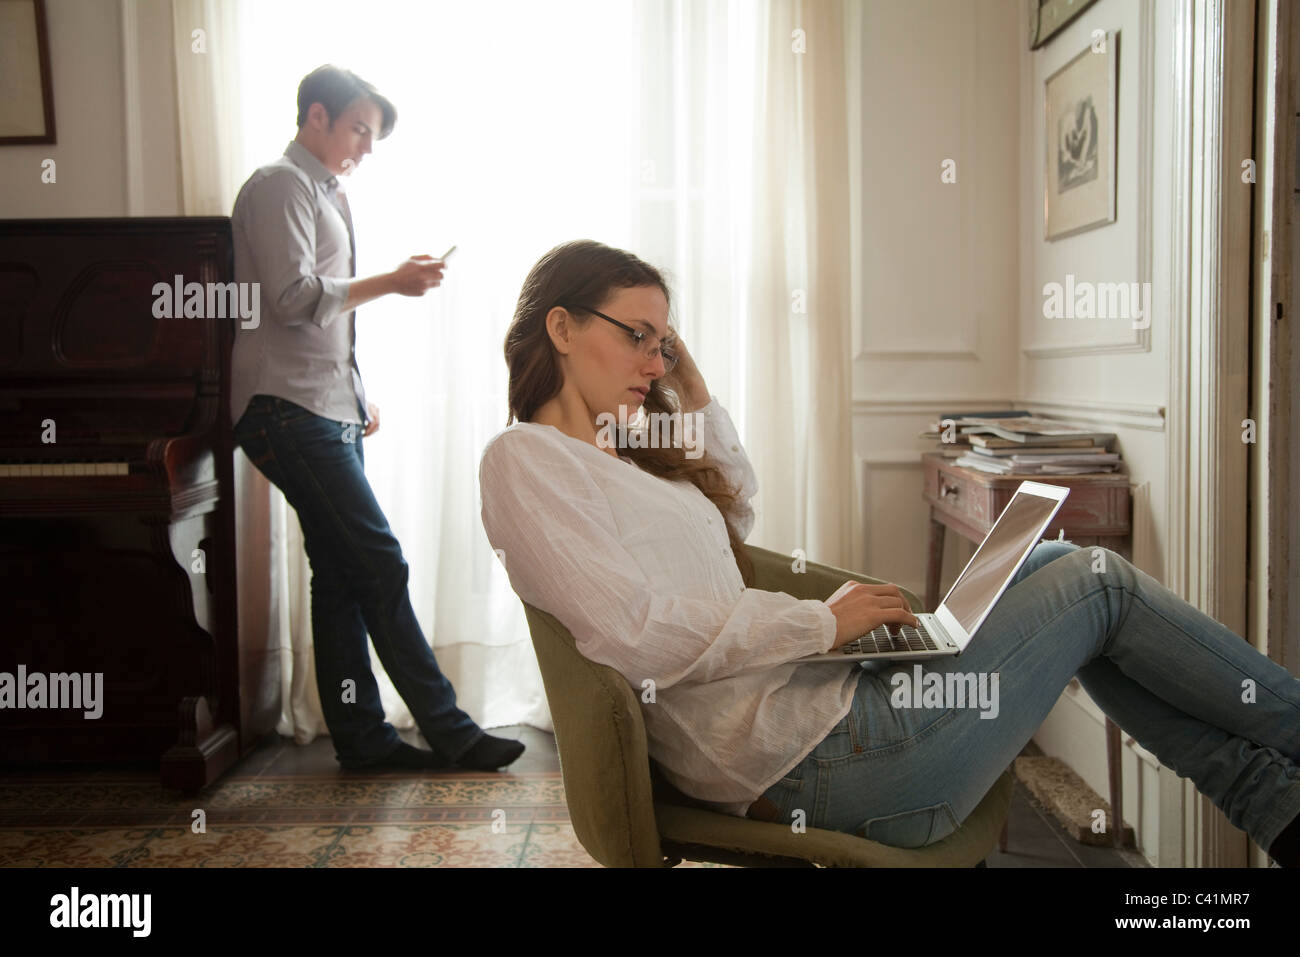 Woman using laptop computer at home, man holding cell phone in background - Stock Image